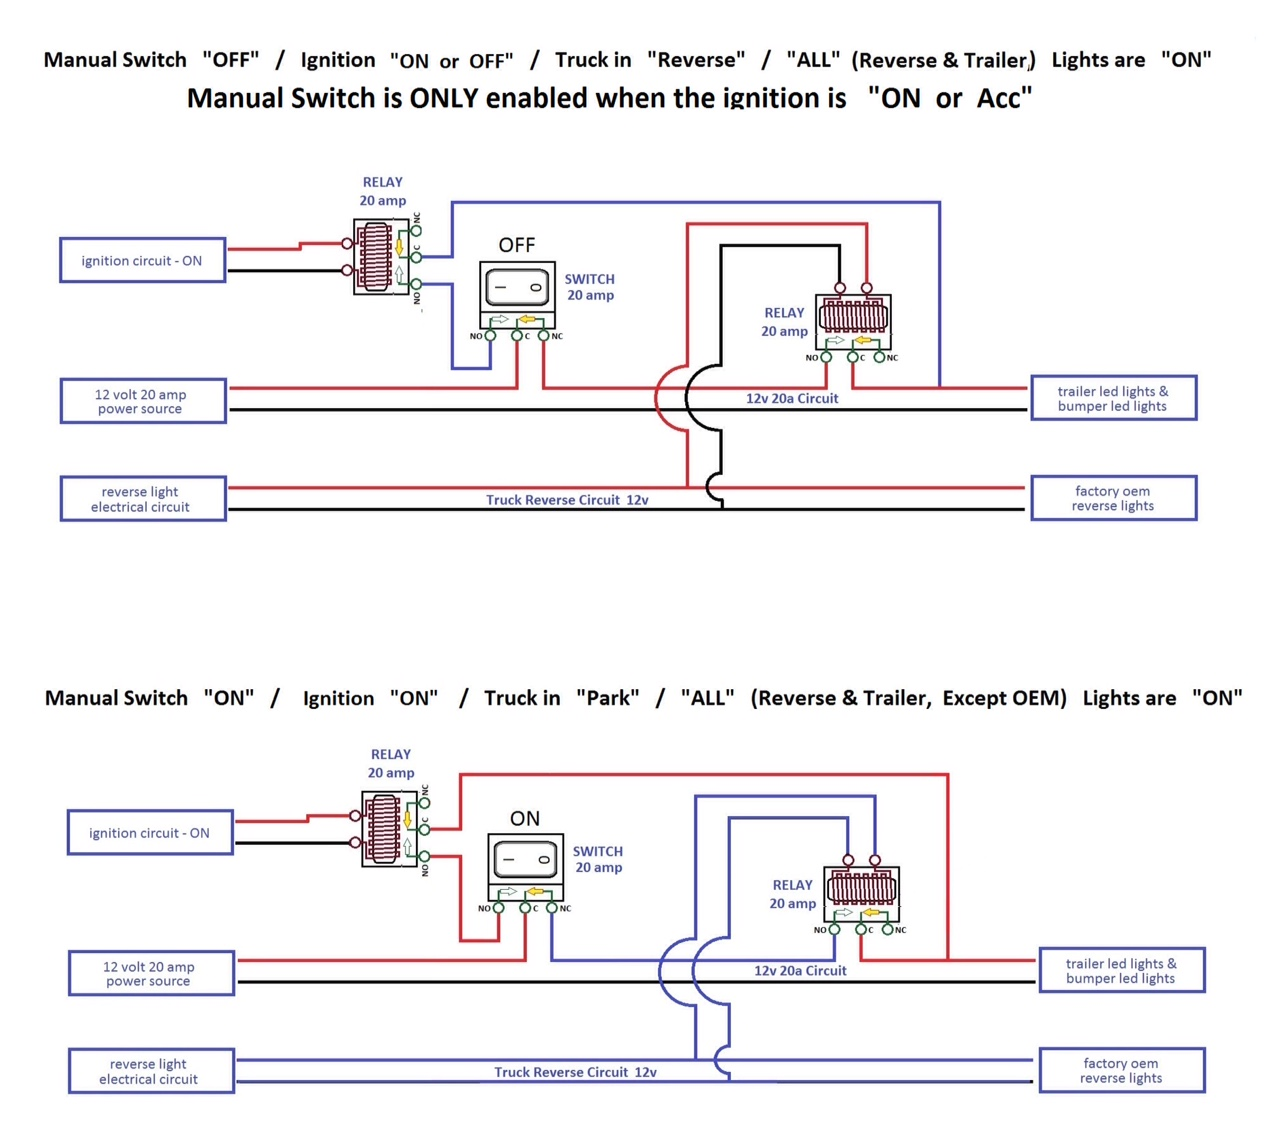 wiring diagram for led boat trailer lights porsche cayenne diagrams aux. reverse - ford f150 forum community of truck fans